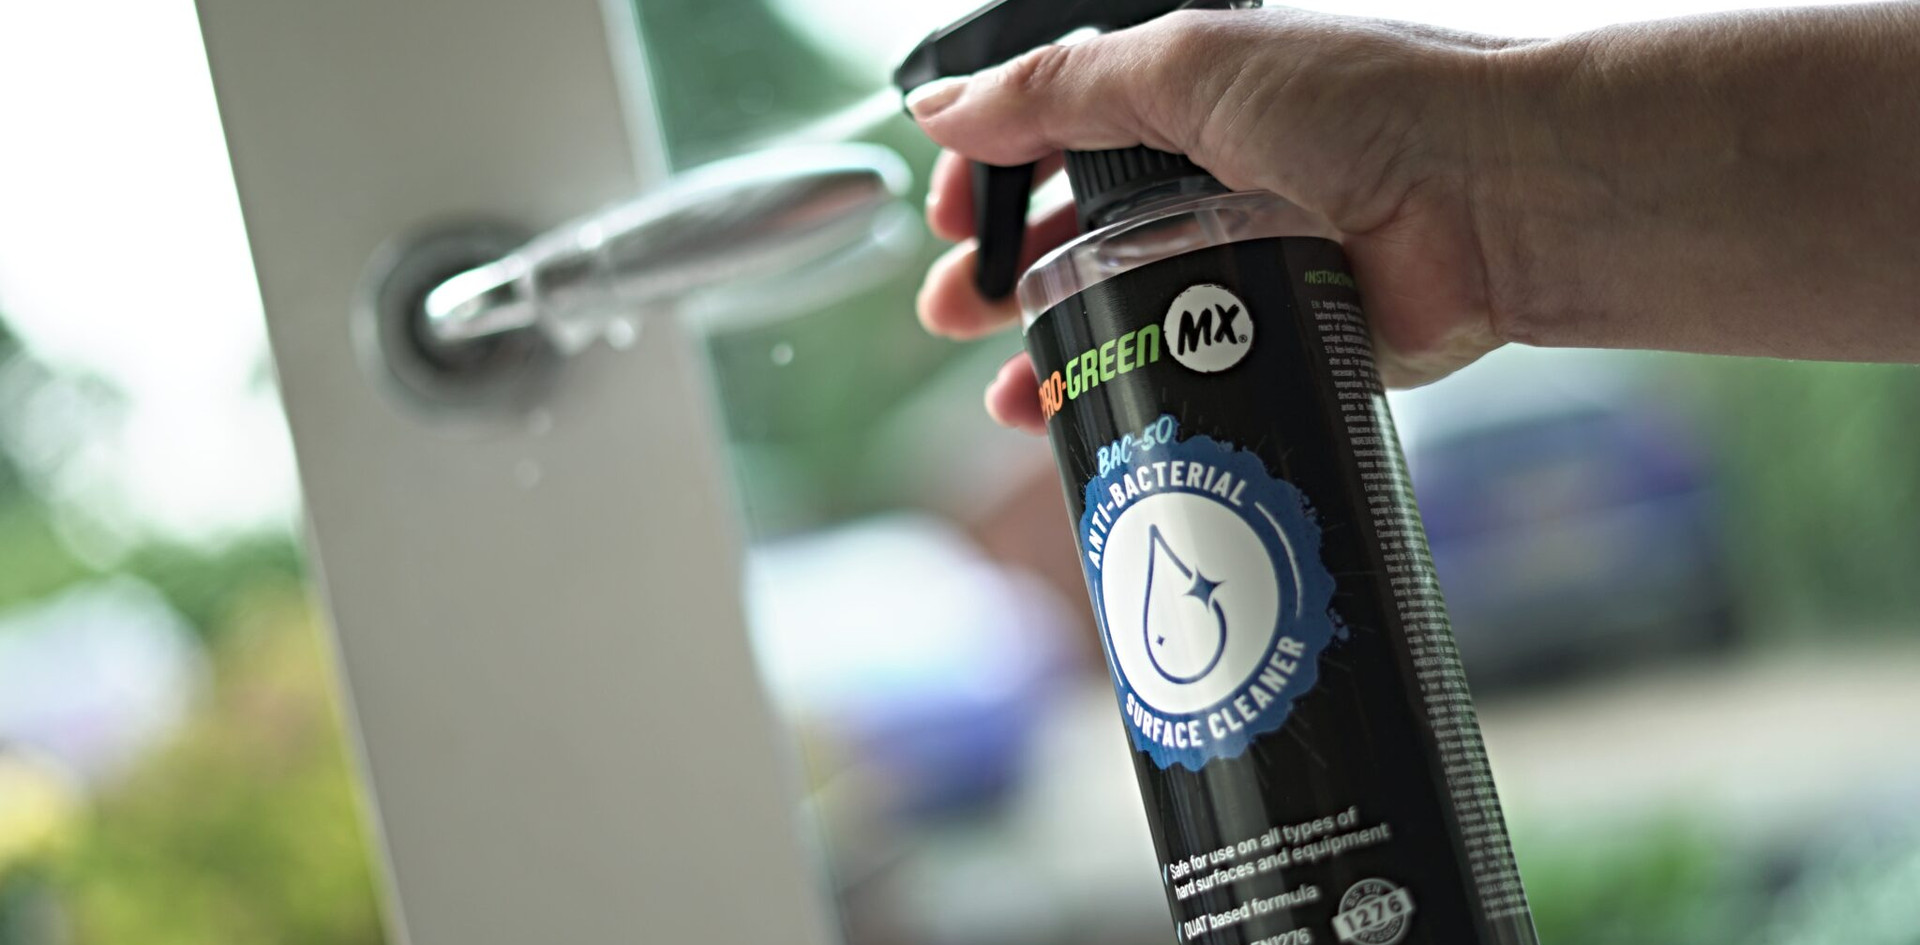 PRO GREEN MX ANTI-BACTERIAL SURFACE CLEANER